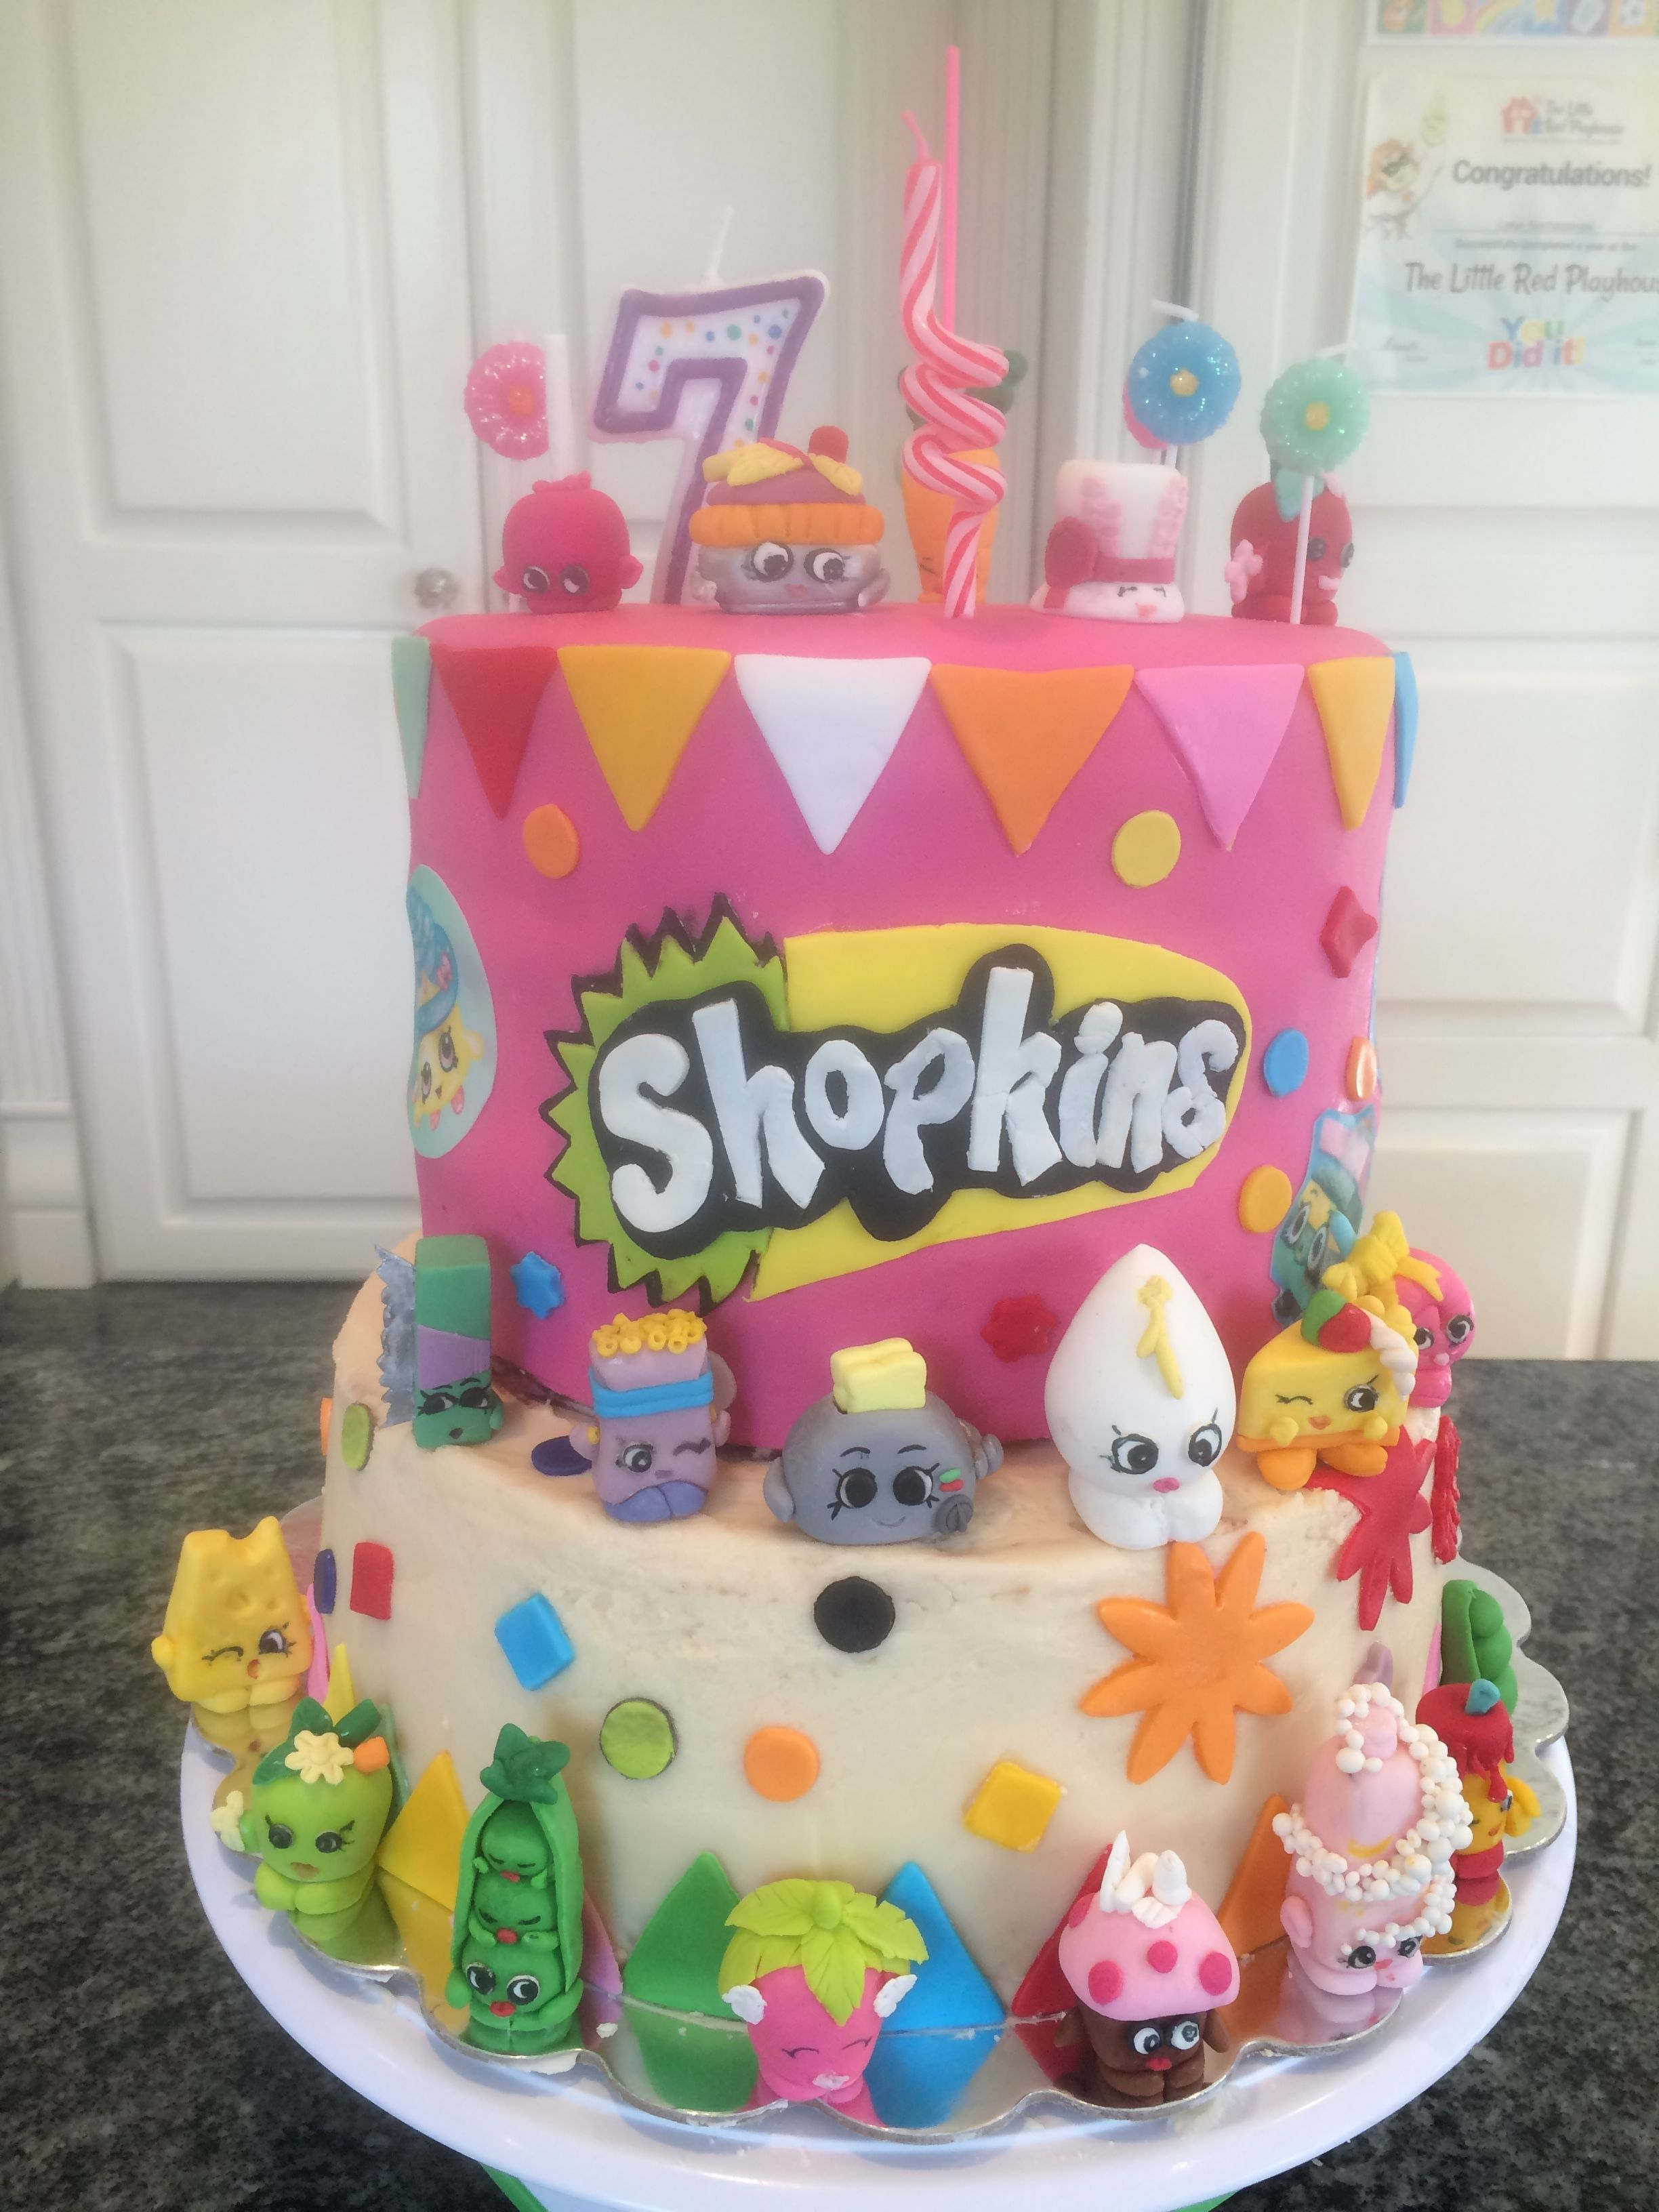 Shopkins Birthday cake Season 3 craft My 7 yr old loved helping me